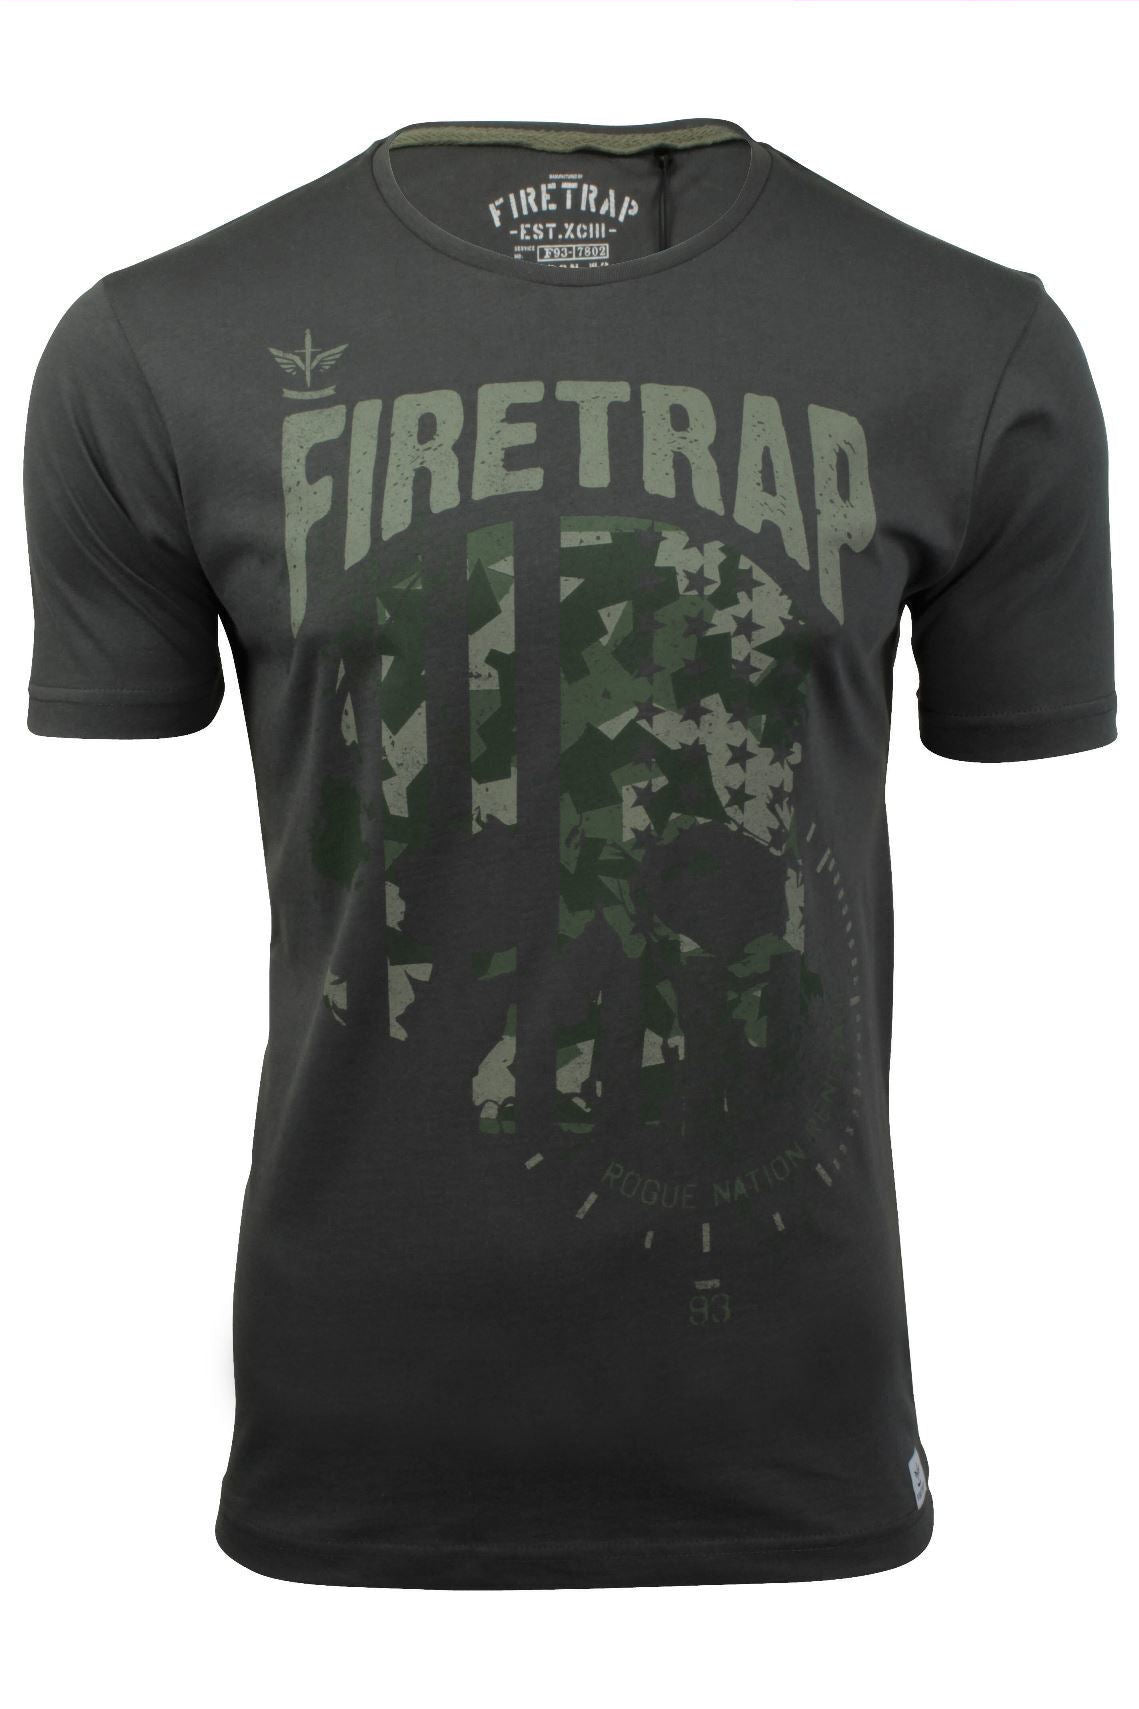 Mens T-Shirt by Firetrap 'Anacost' Short Sleeved-Main Image